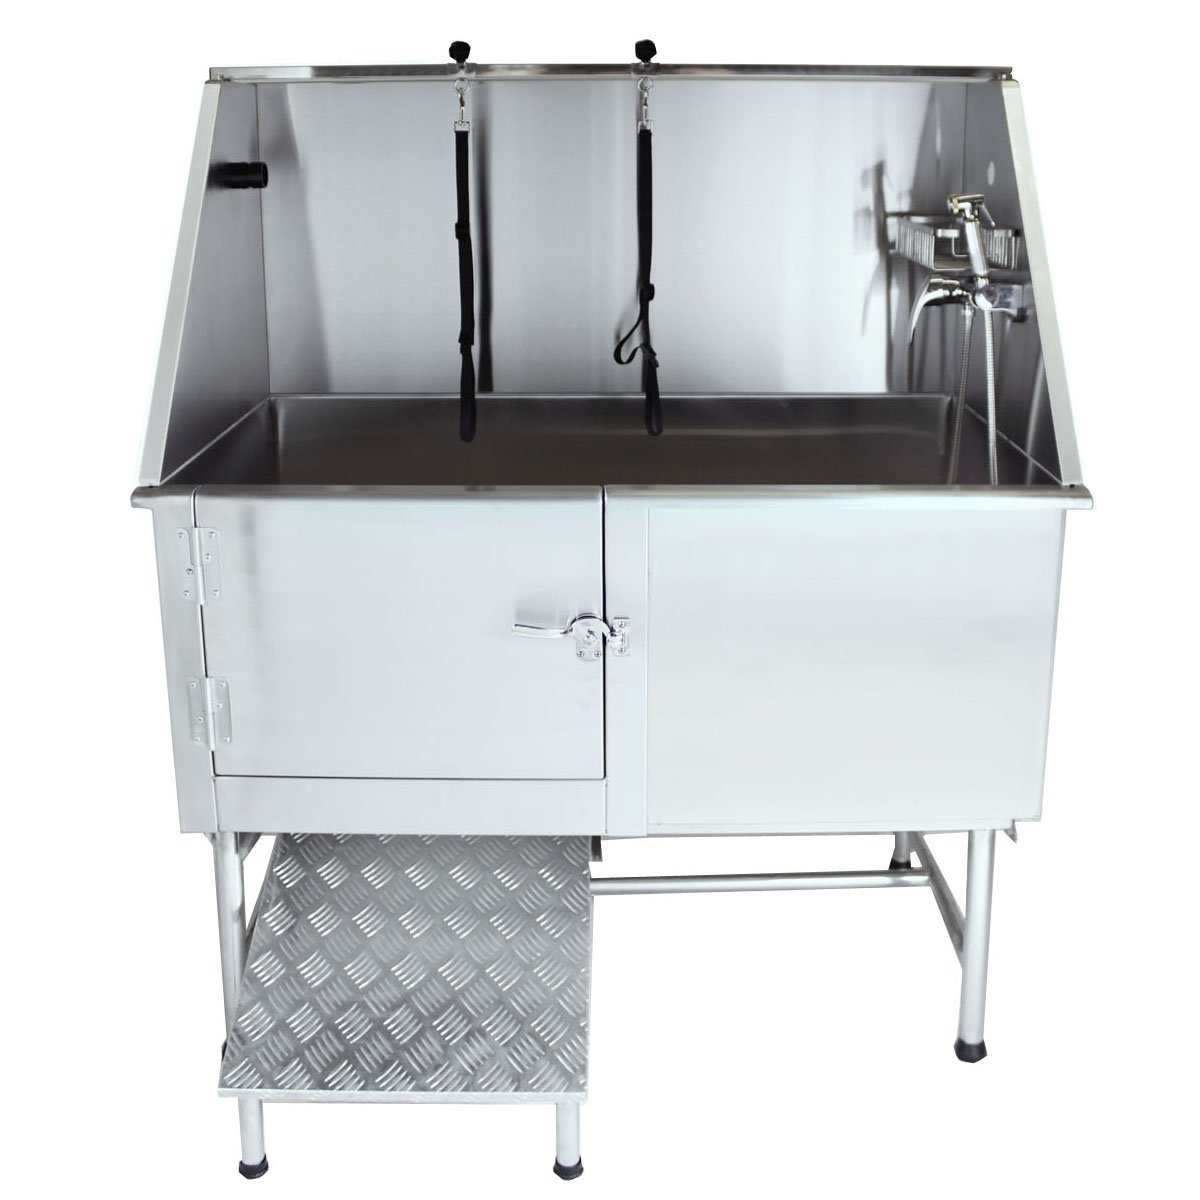 Flying Pig Grooming 50'' Stainless Steel Pet Dog Bath Tub with Faucet (Left door/Right Drain), 50 x 27 x 58''